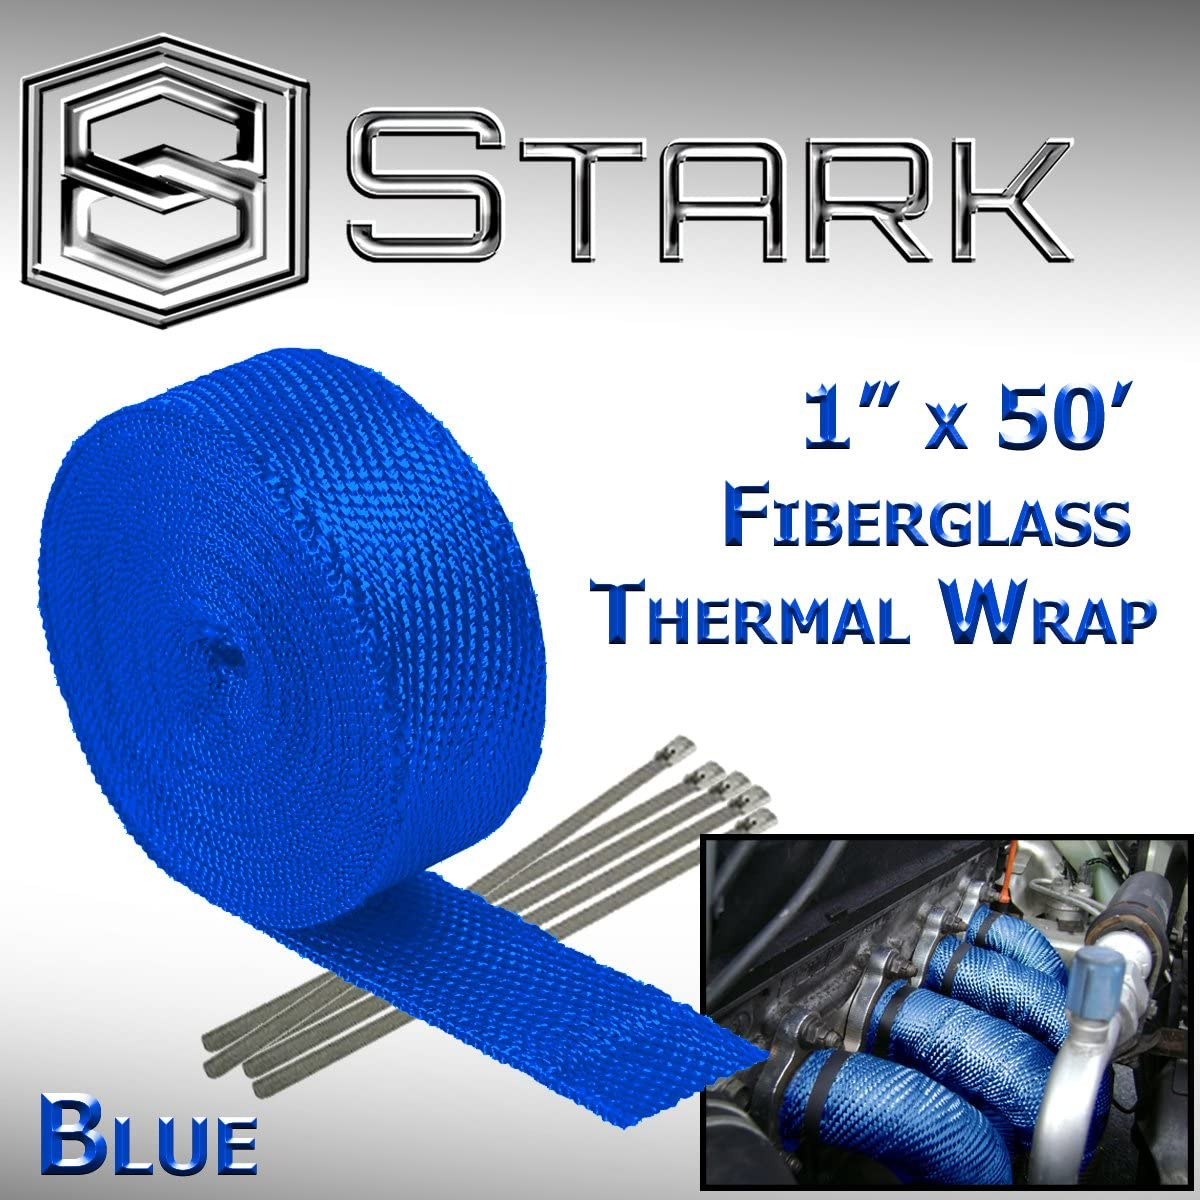 Max 74% OFF Stark Thermal Wrap 1